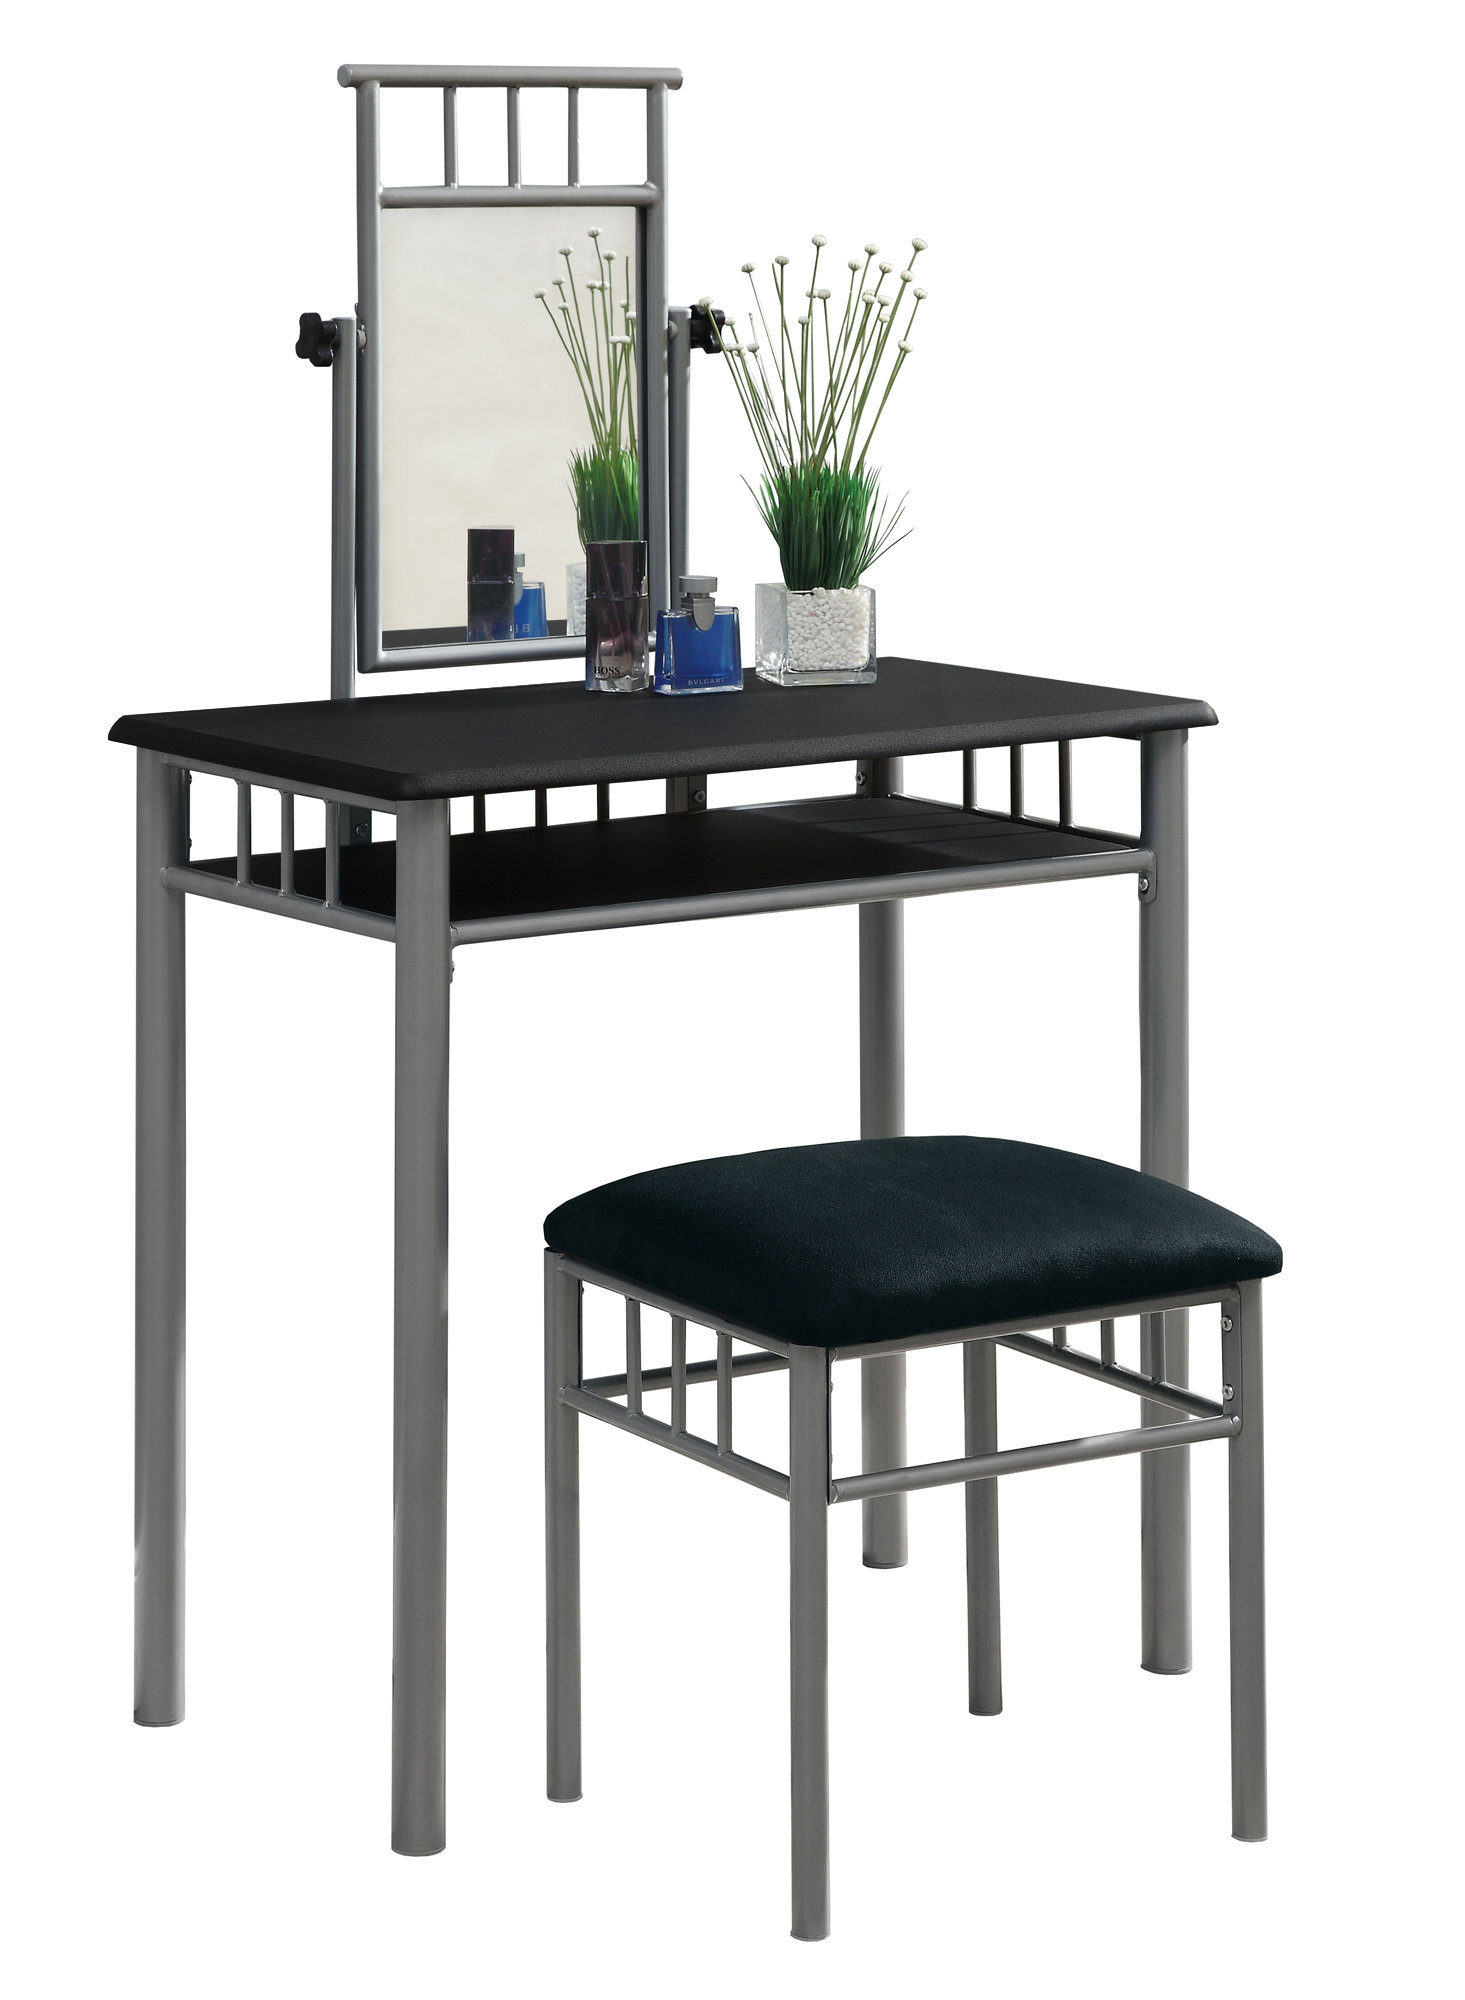 Monarch 2-Piece Modern Grey Metal Frame Vanity Makeup Table Set with Padded Bench Seat and Mirror - Black Finish from Monarch